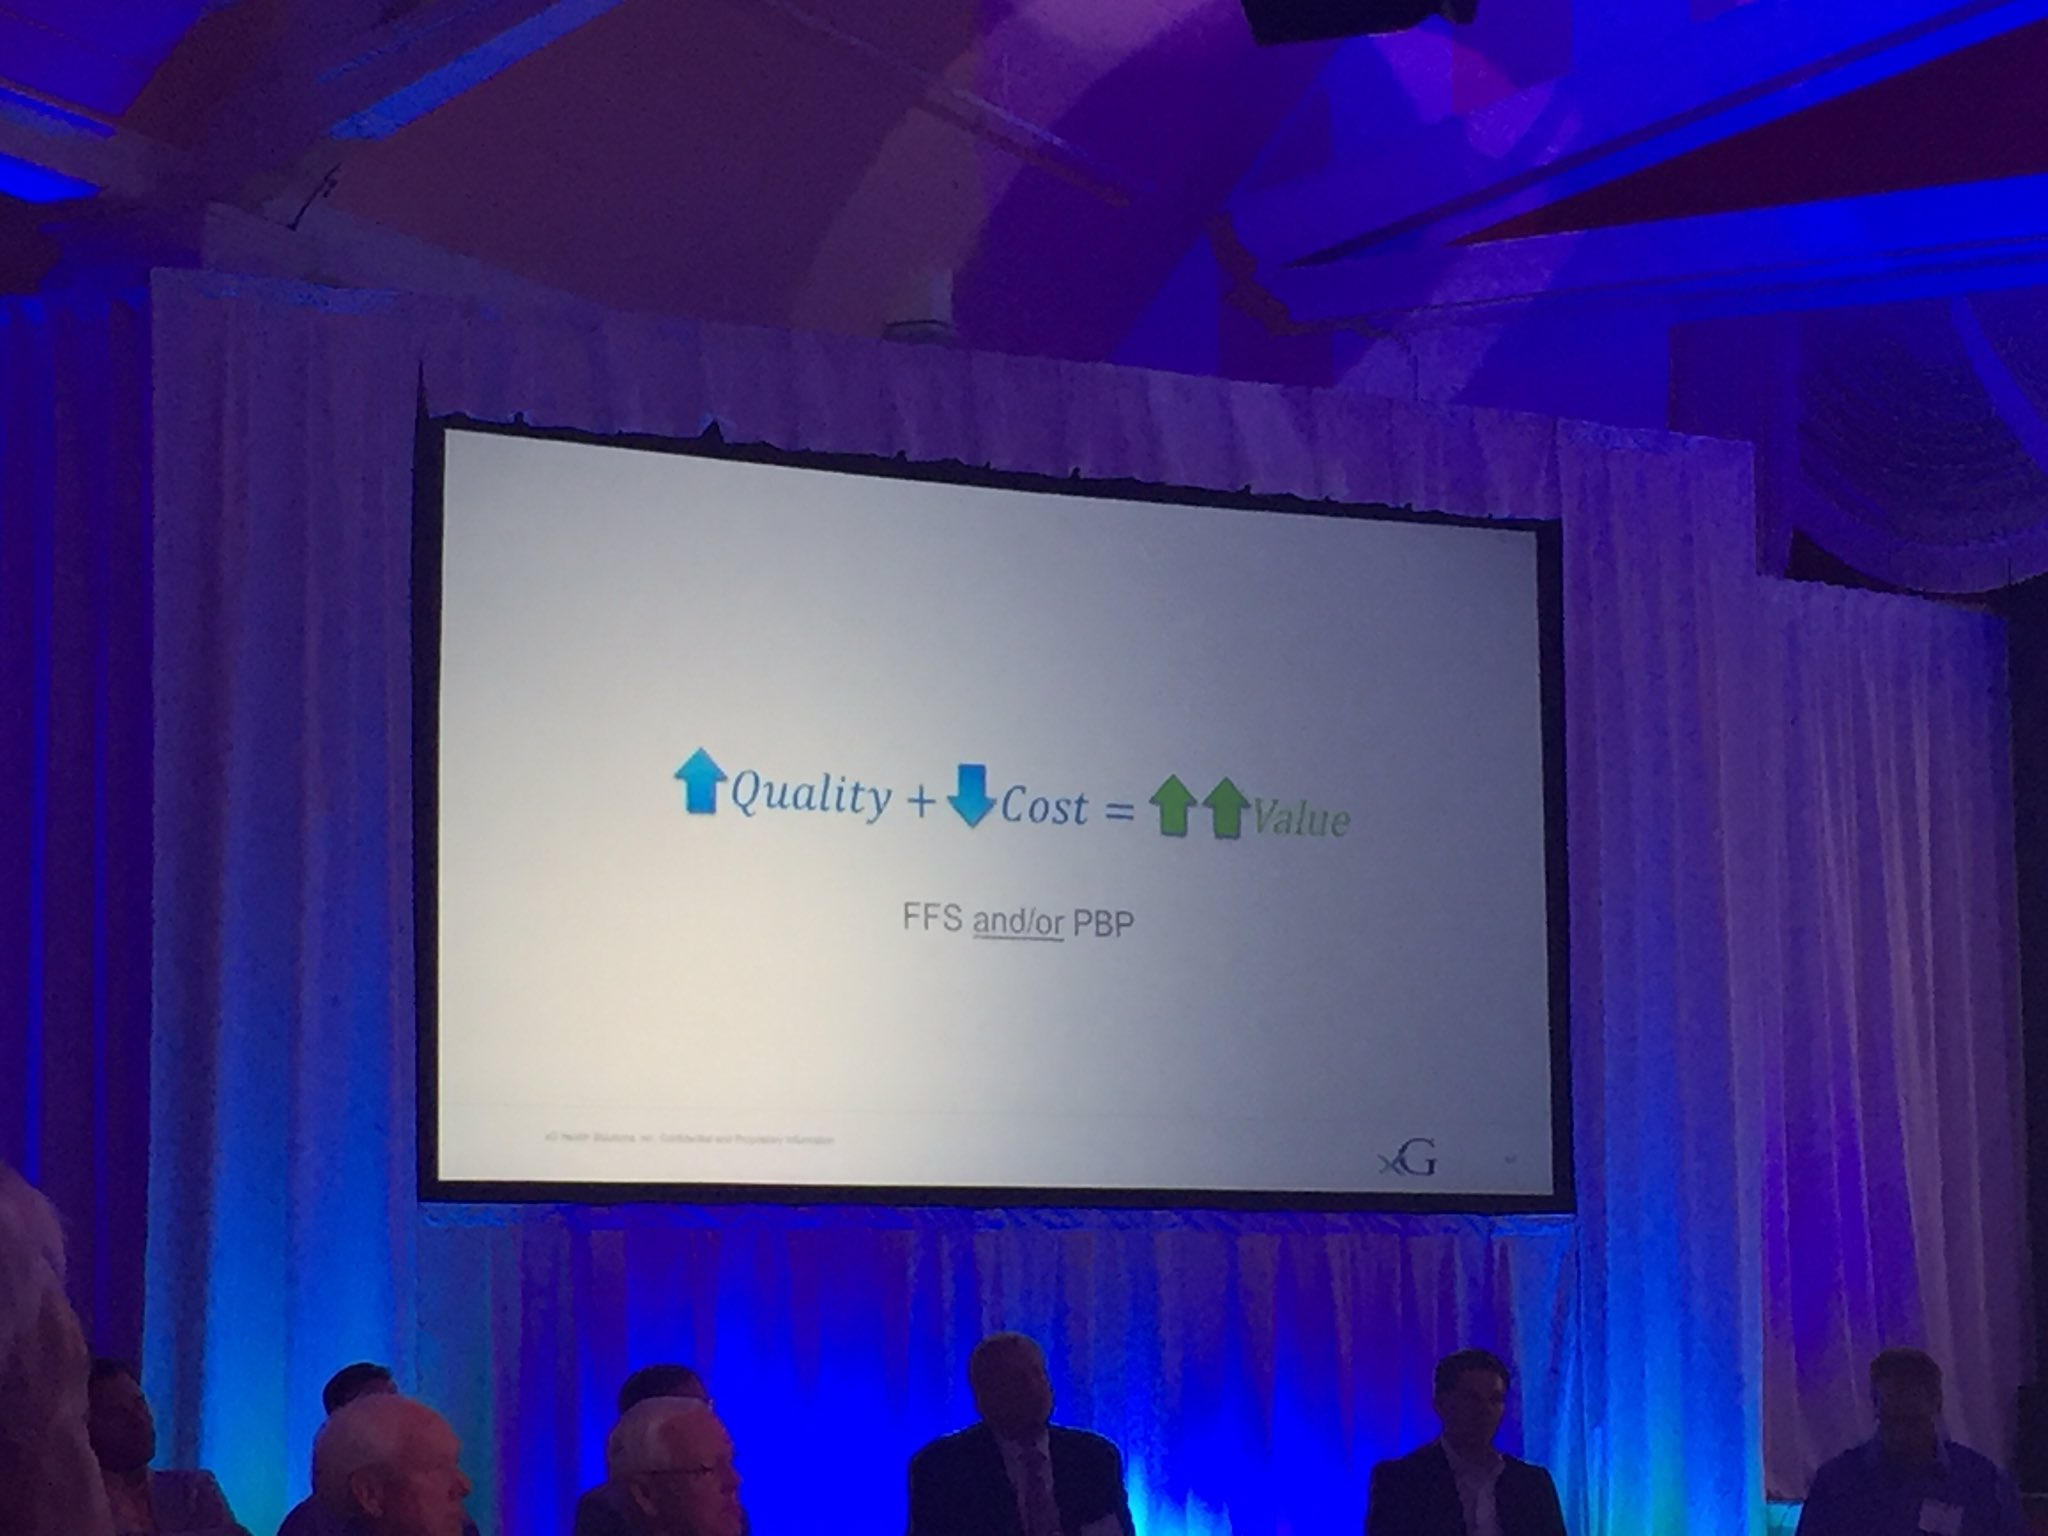 Steele: quality ⬆️ + cost ⬇️= value ⬆️⬆️ #MHAannual https://t.co/rRGV6F0YXW